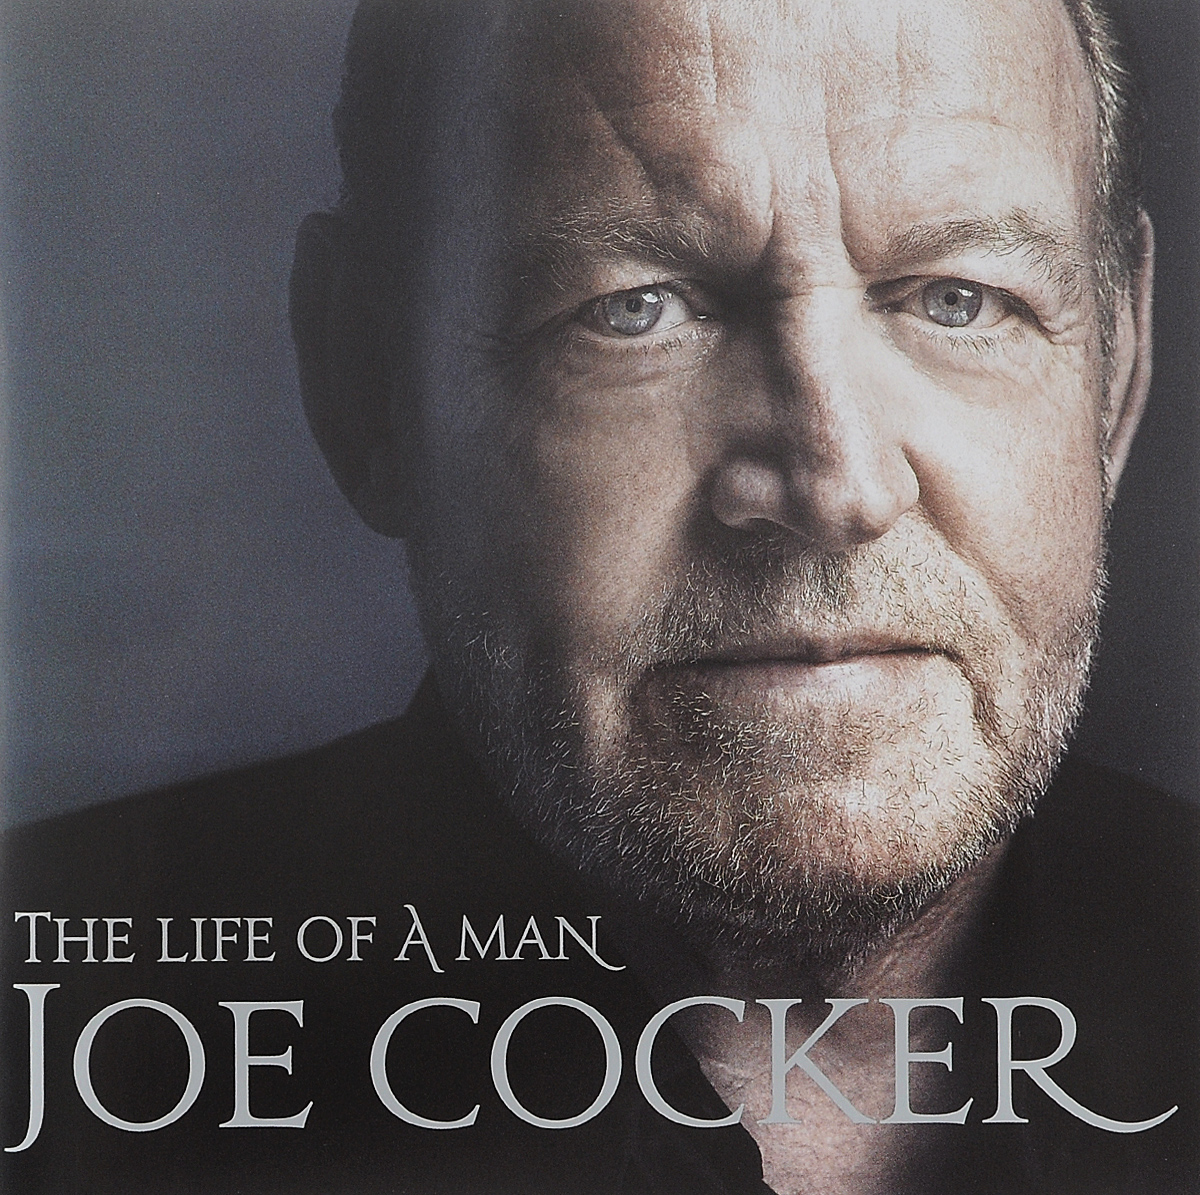 Джо Кокер Joe Cocker. The Life Of A Man. The Ultimate Hits 1964-2014 (2 CD) a ha time and again – the ultimate a ha 2 cd